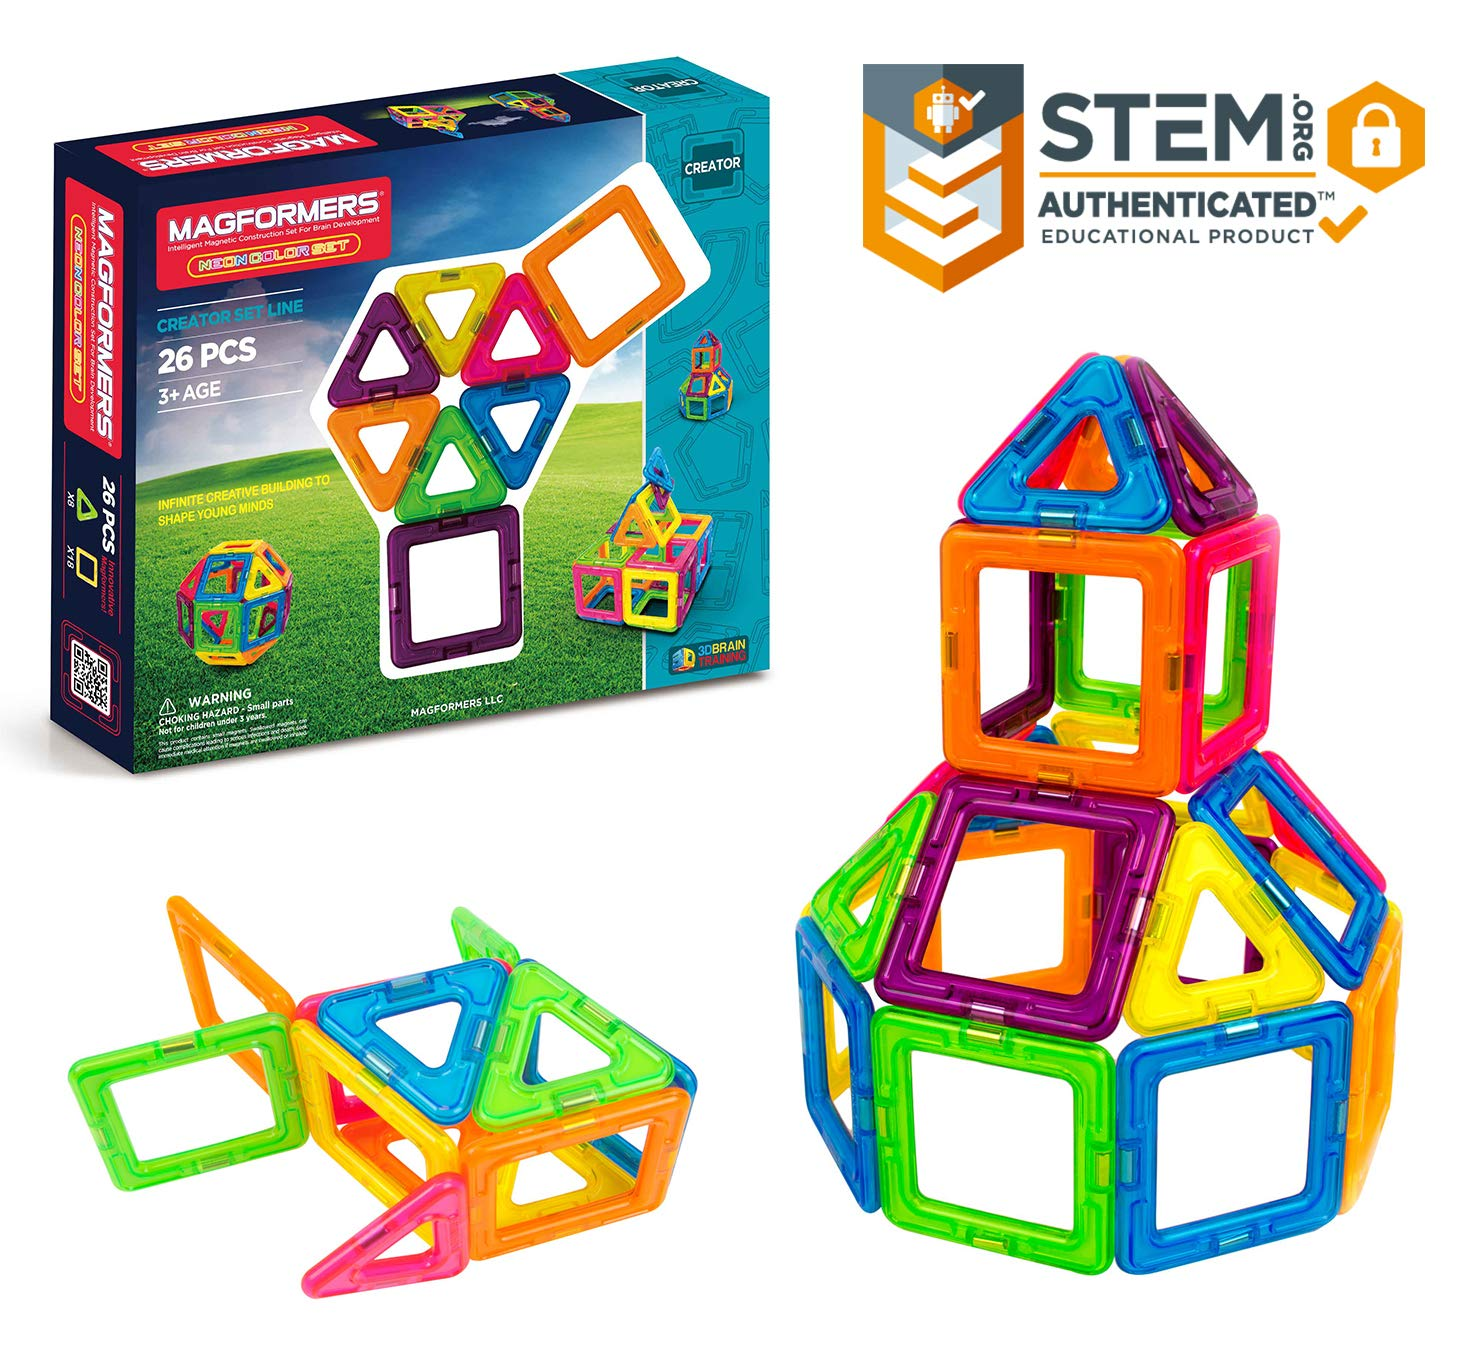 Magformers Neon 26 Pieces Rainbow neon Colors, Educational Magnetic Geometric Shapes Tiles Building STEM Toy Set Ages 3+